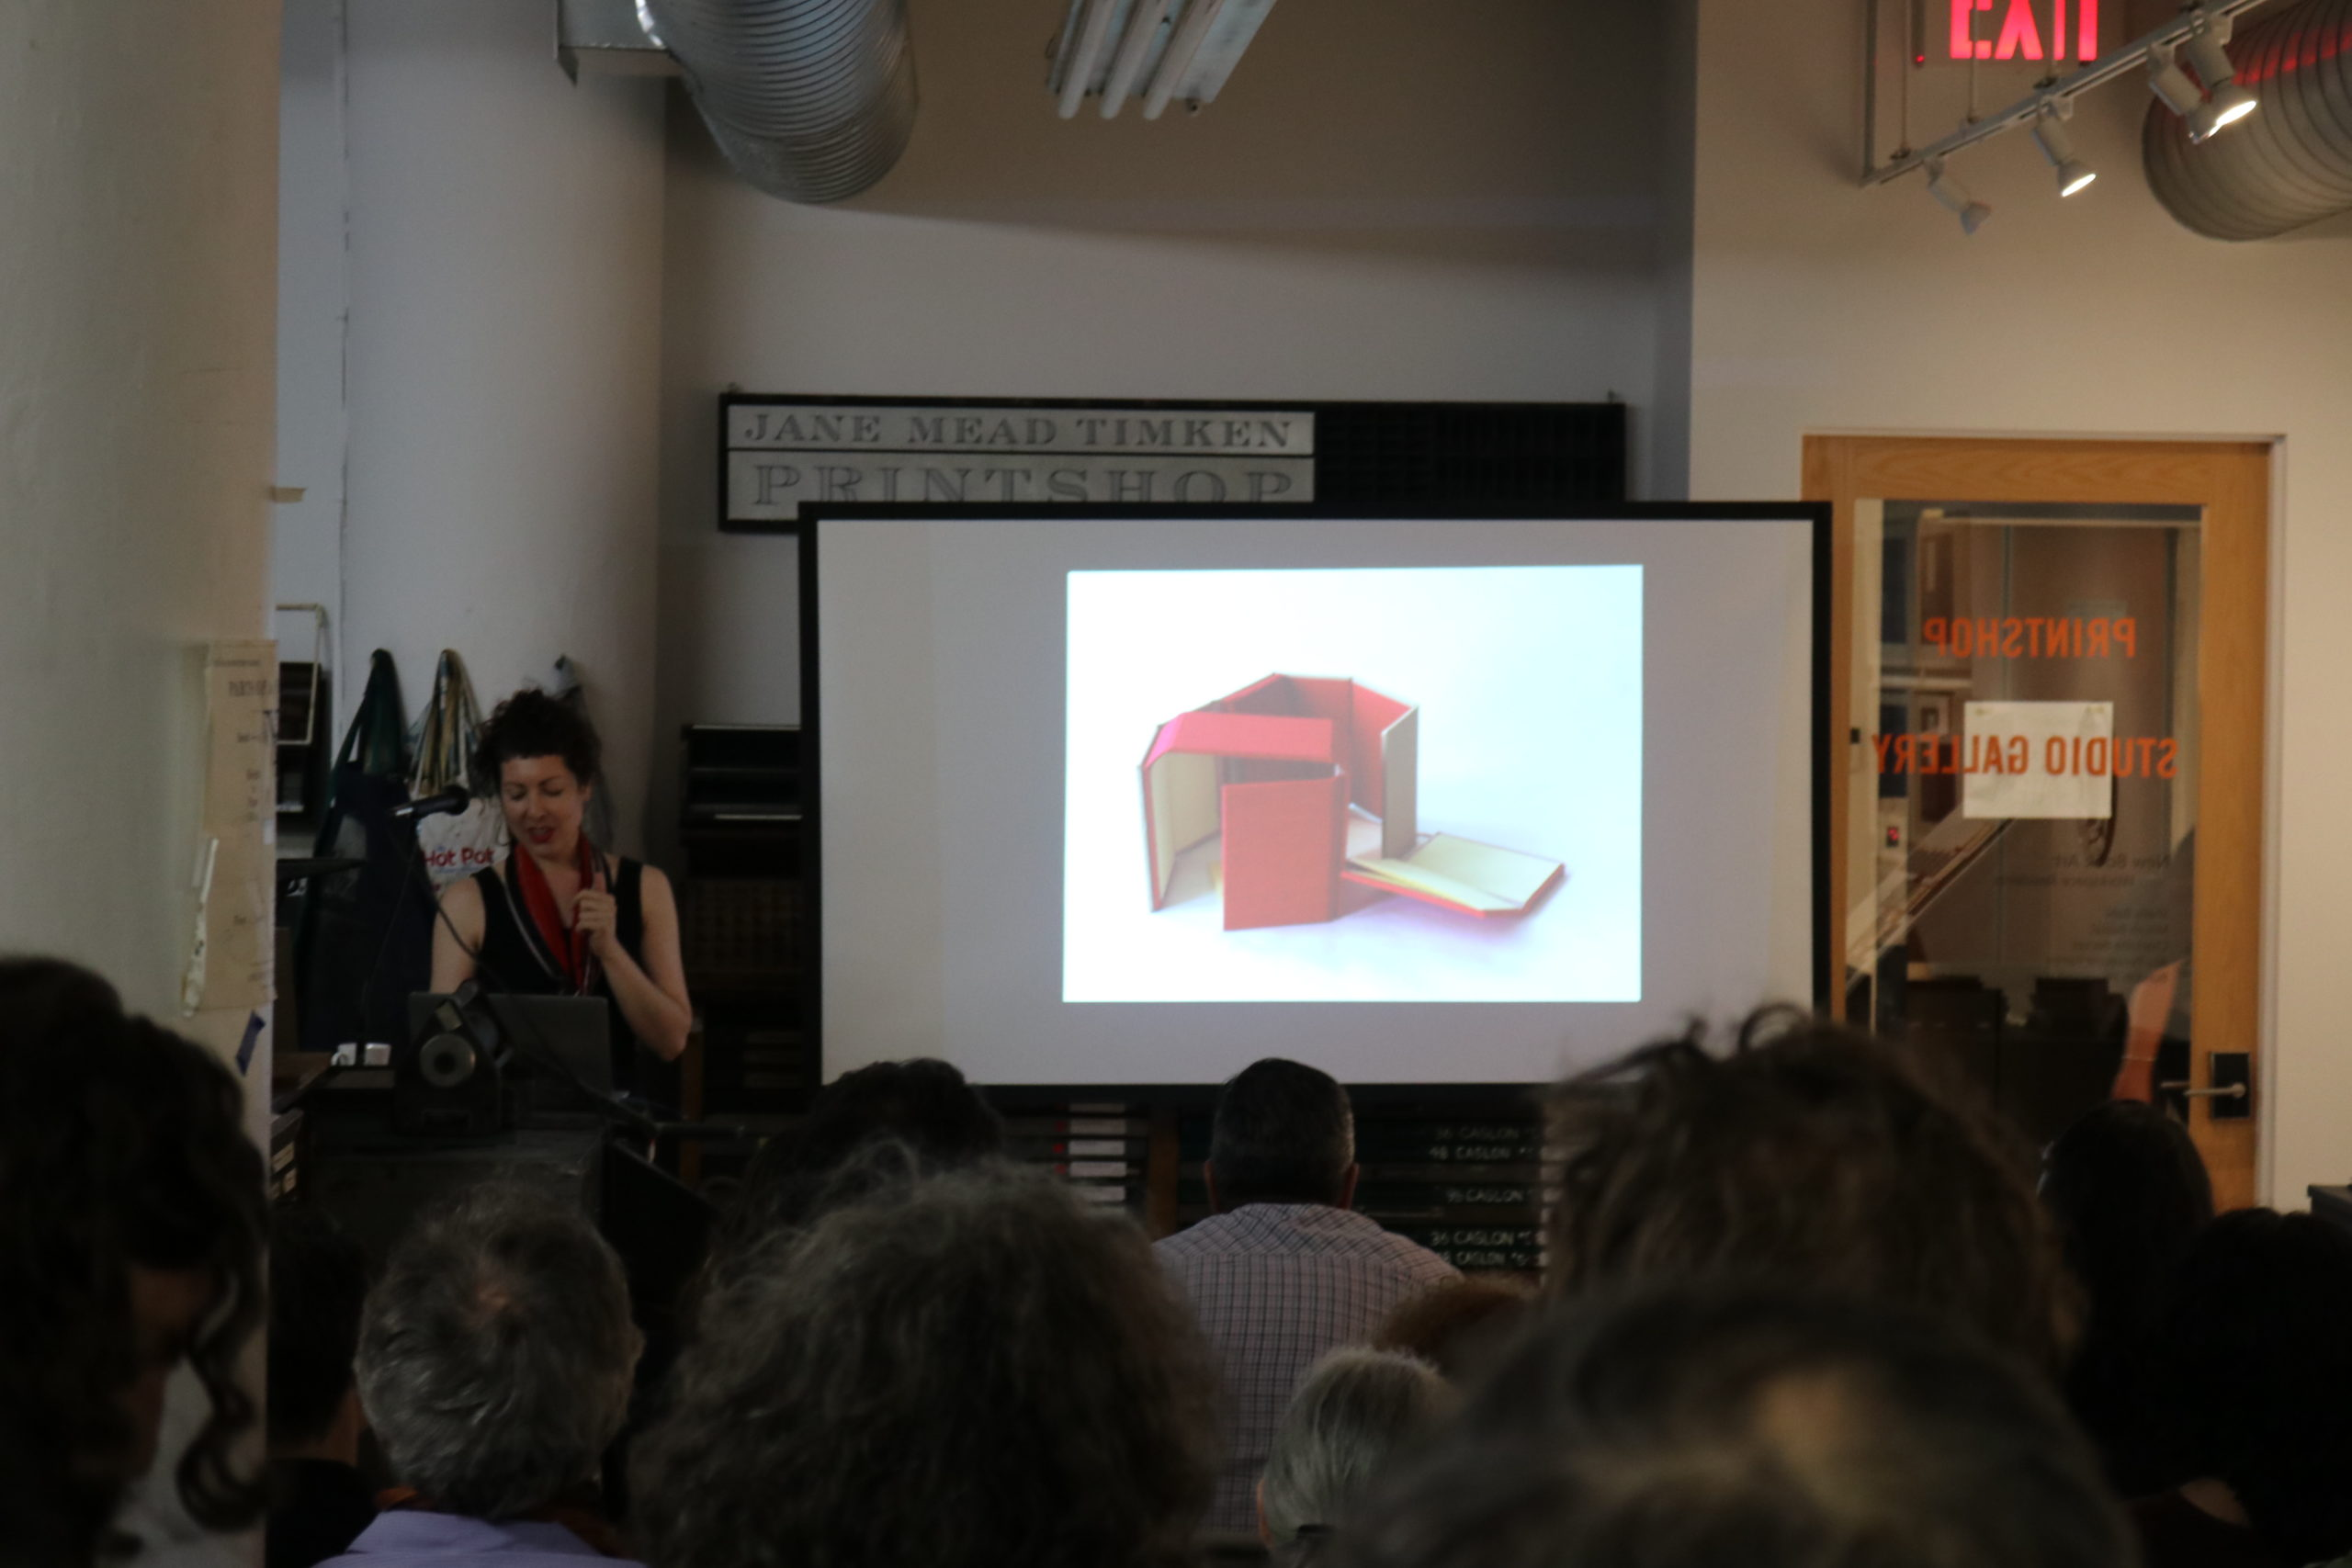 Milcah Basel speaks to a crowd of people in the cba printshop